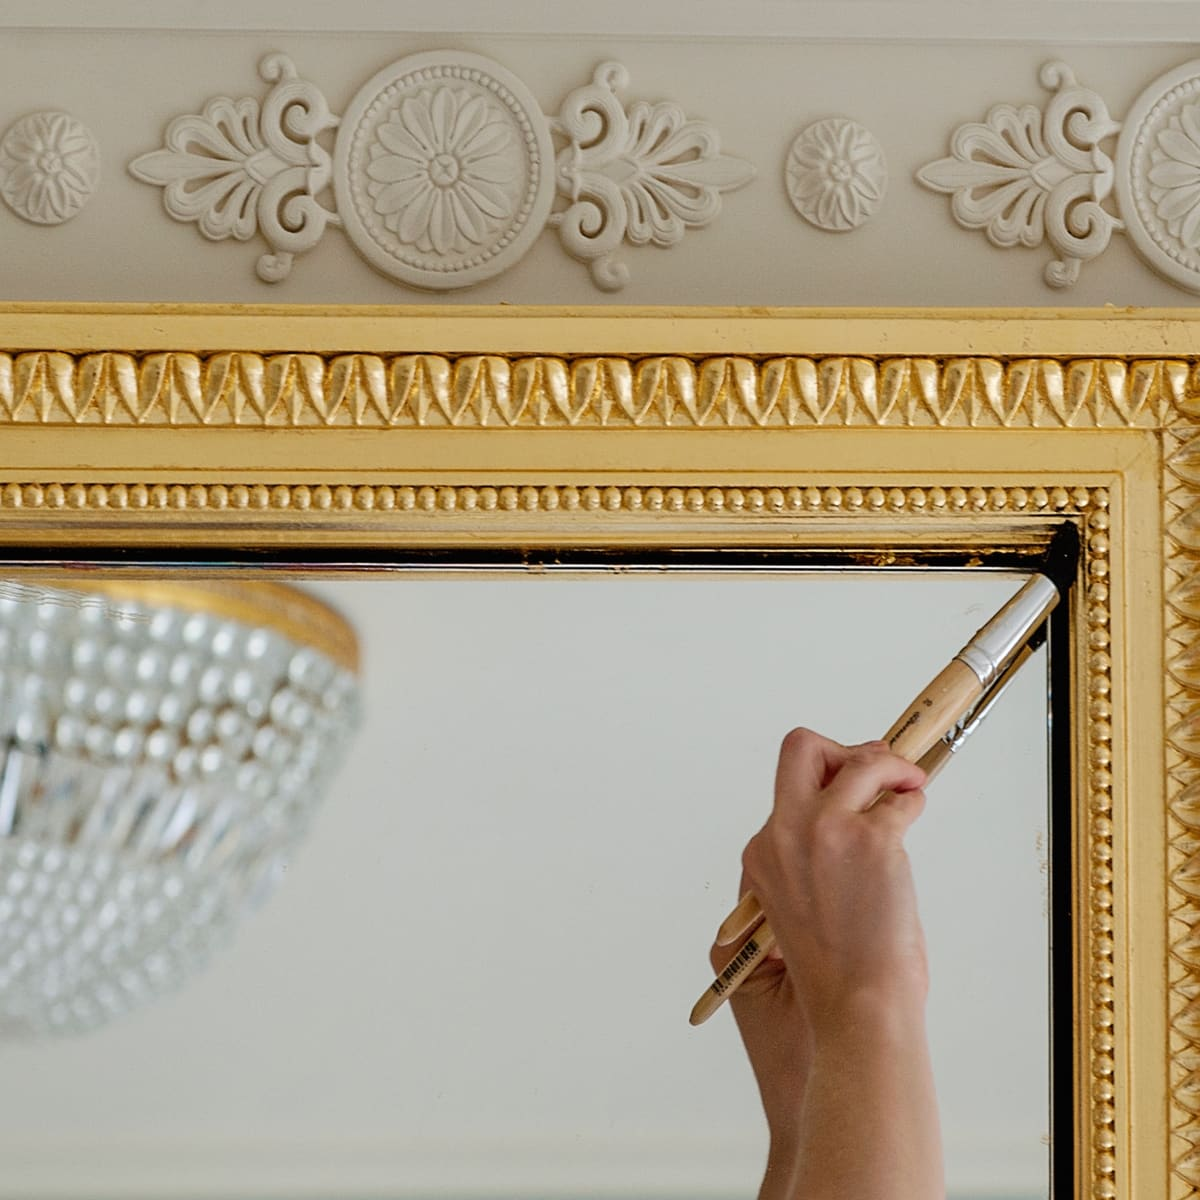 News, Ritz Hotel Paris, artisans, Jan. 2016